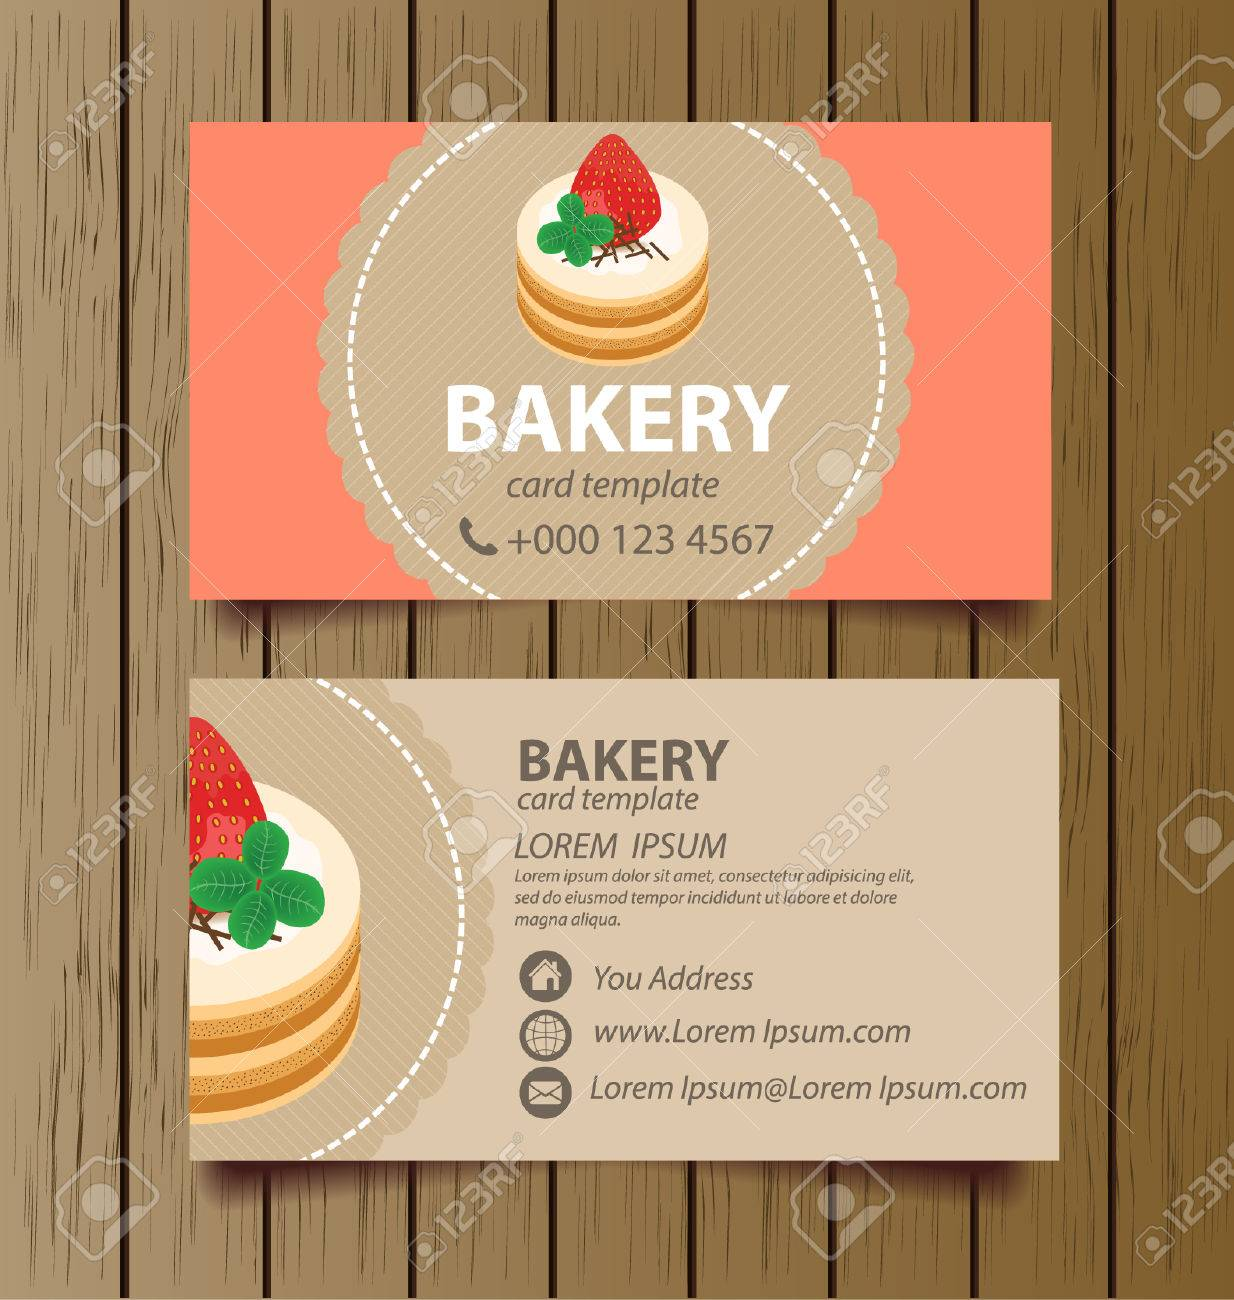 Business card template for bakery business vector illustration banco de imagens business card template for bakery business vector illustration reheart Gallery